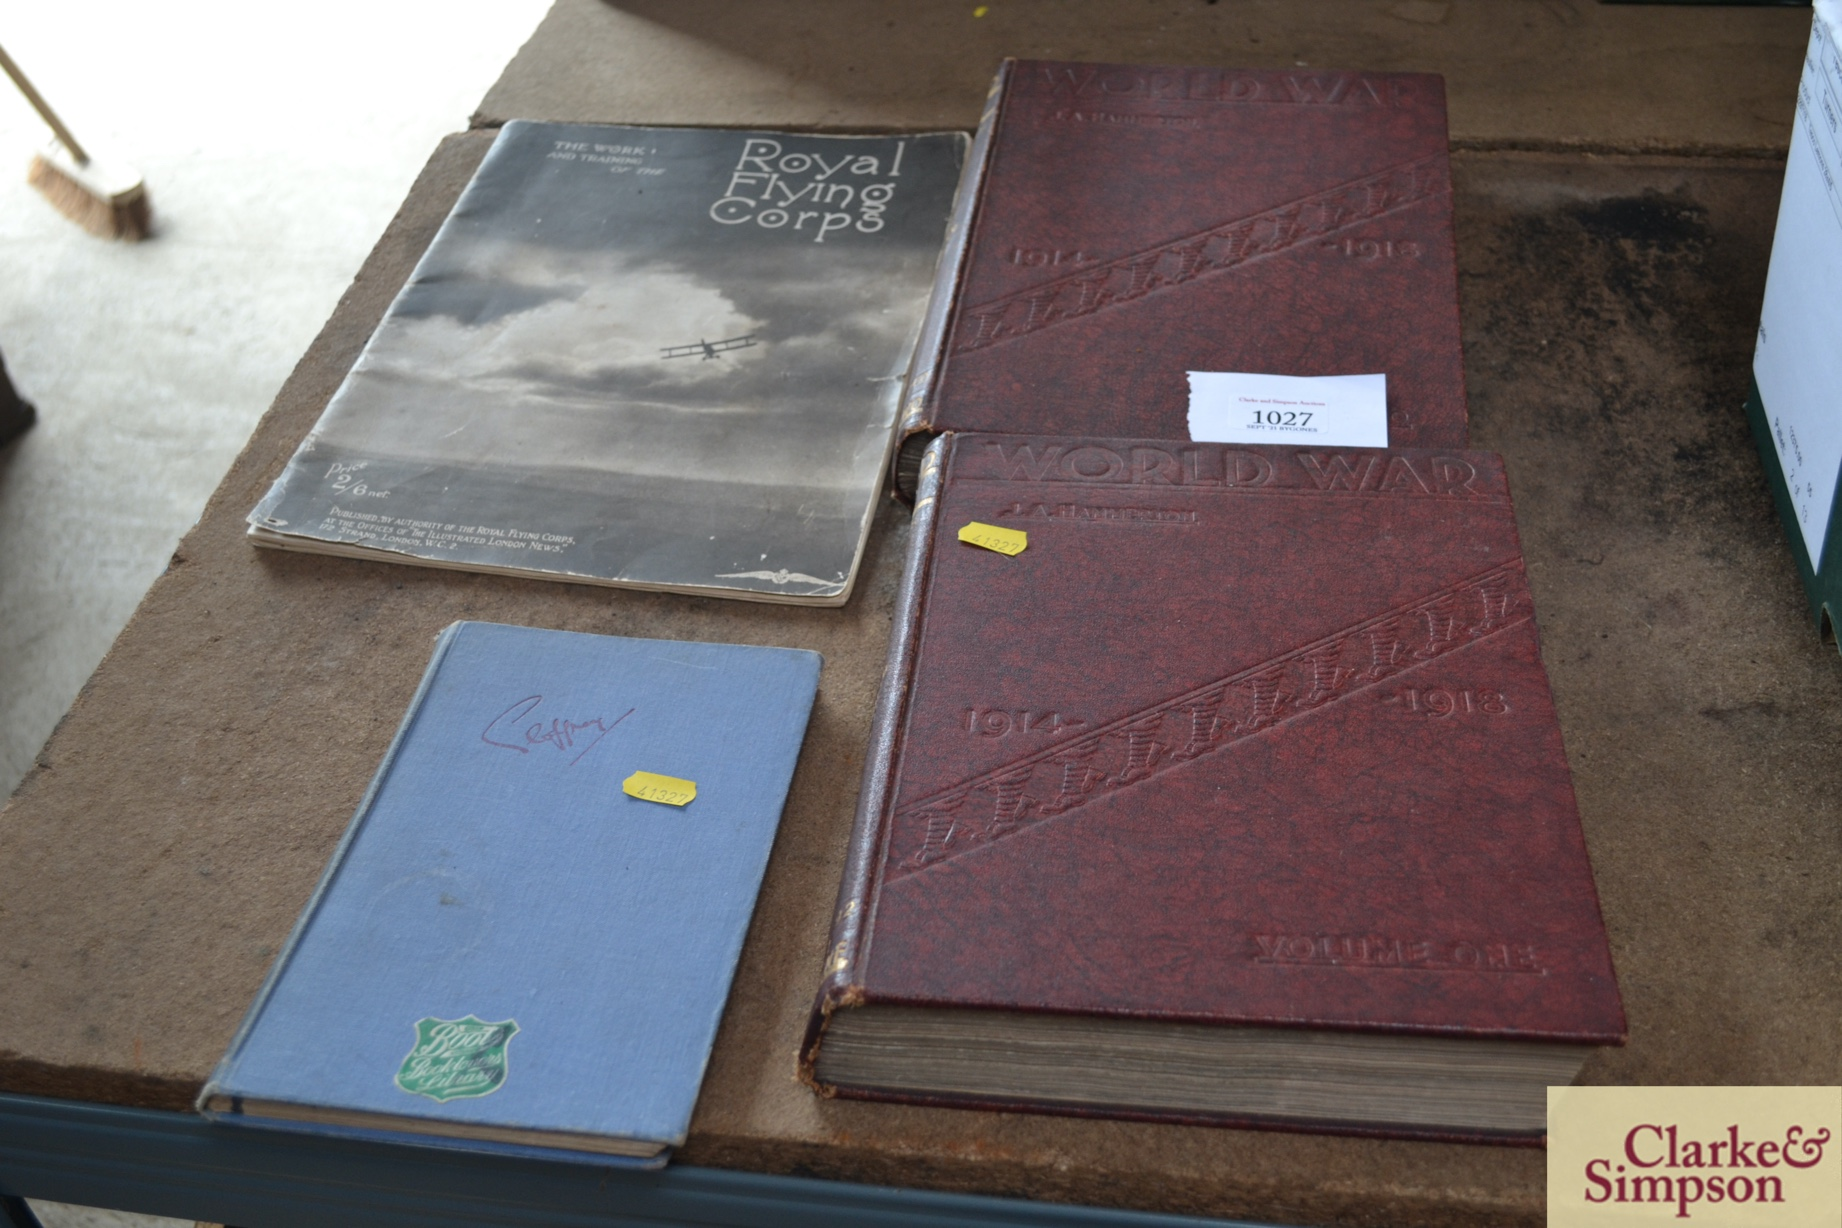 Two volumes of World War 1914-1918, The Royal Flyi